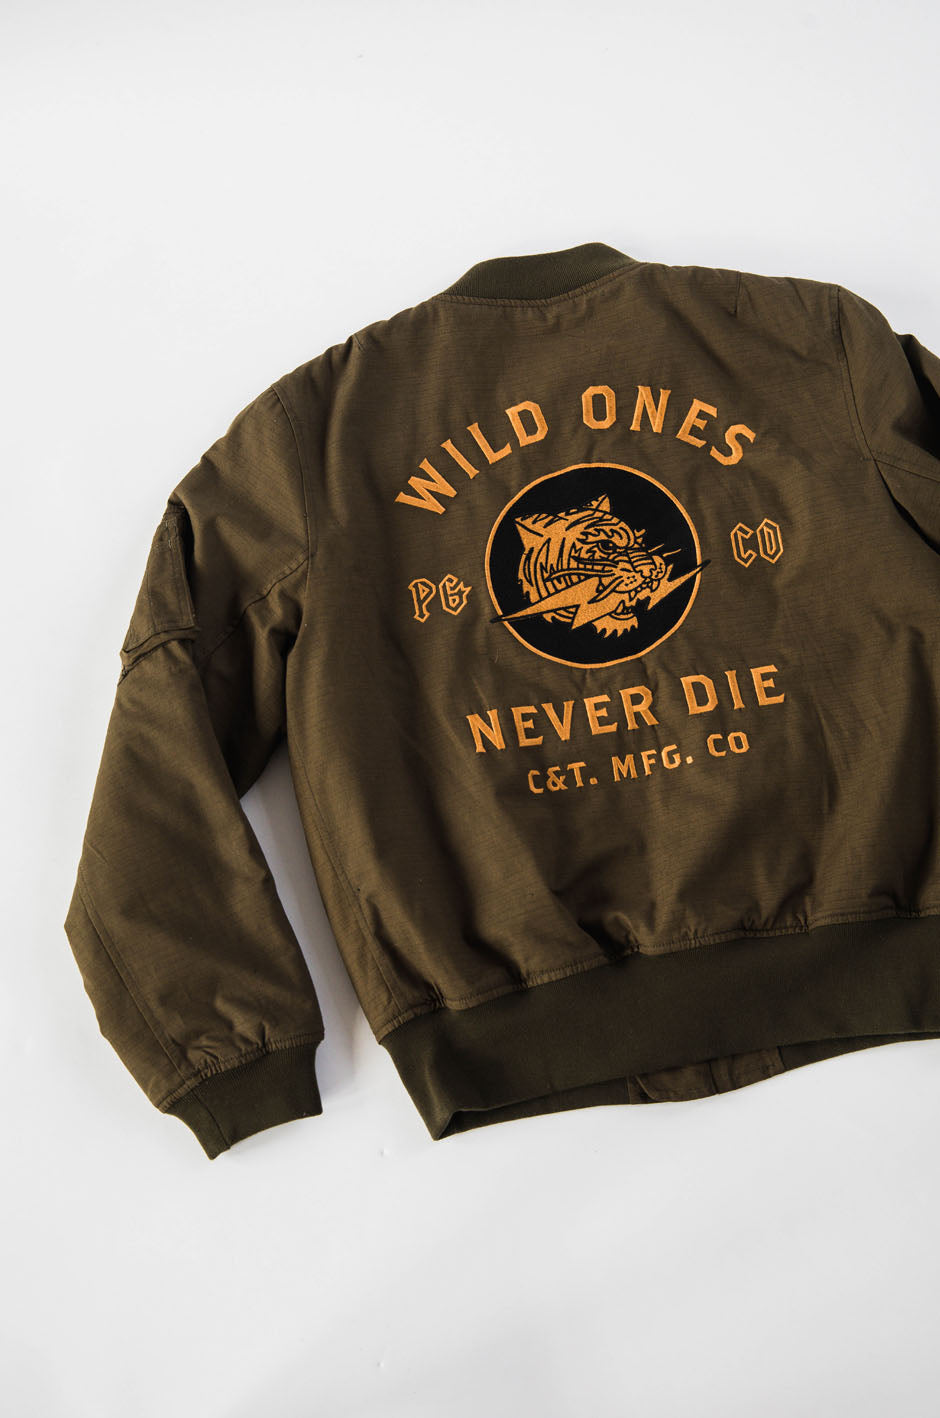 Wild Ones Ripstop Bomber Jacket // P&Co // pandco // Provision & Co // Winter 2017 // Menswear